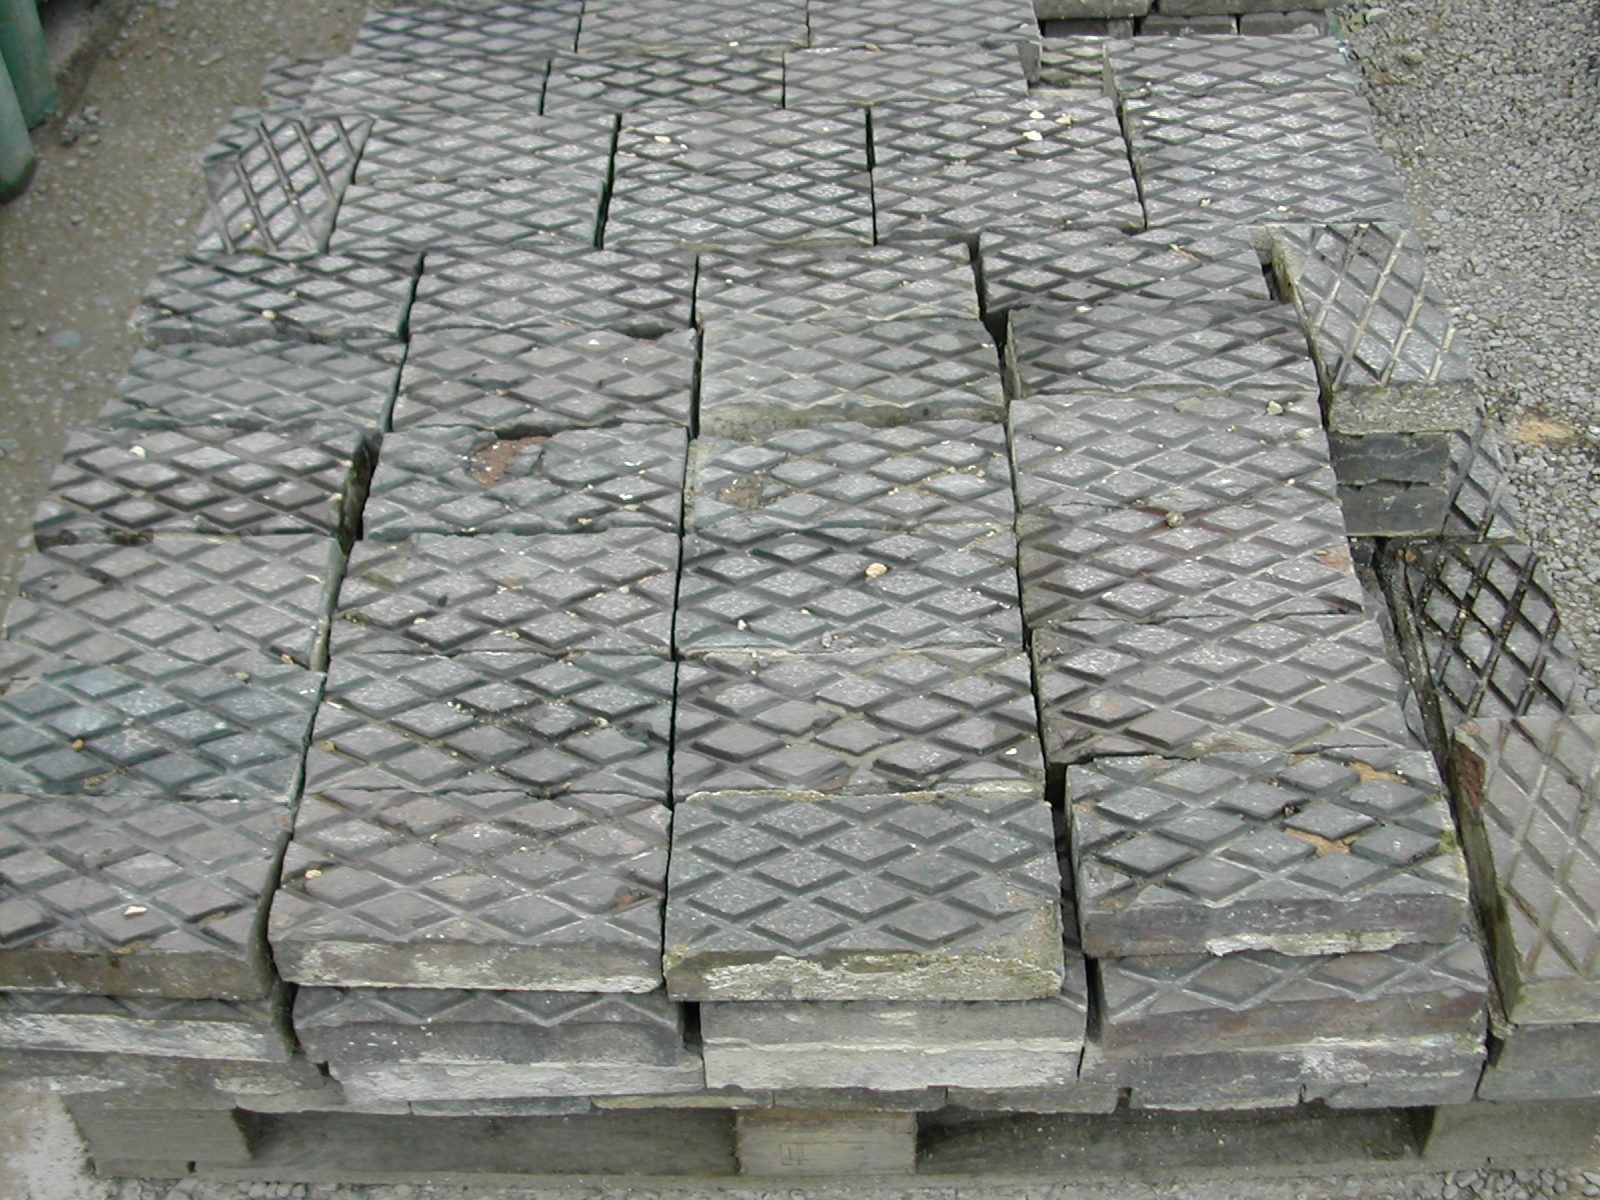 bensreckyard ebay photo Diamond pavers 8